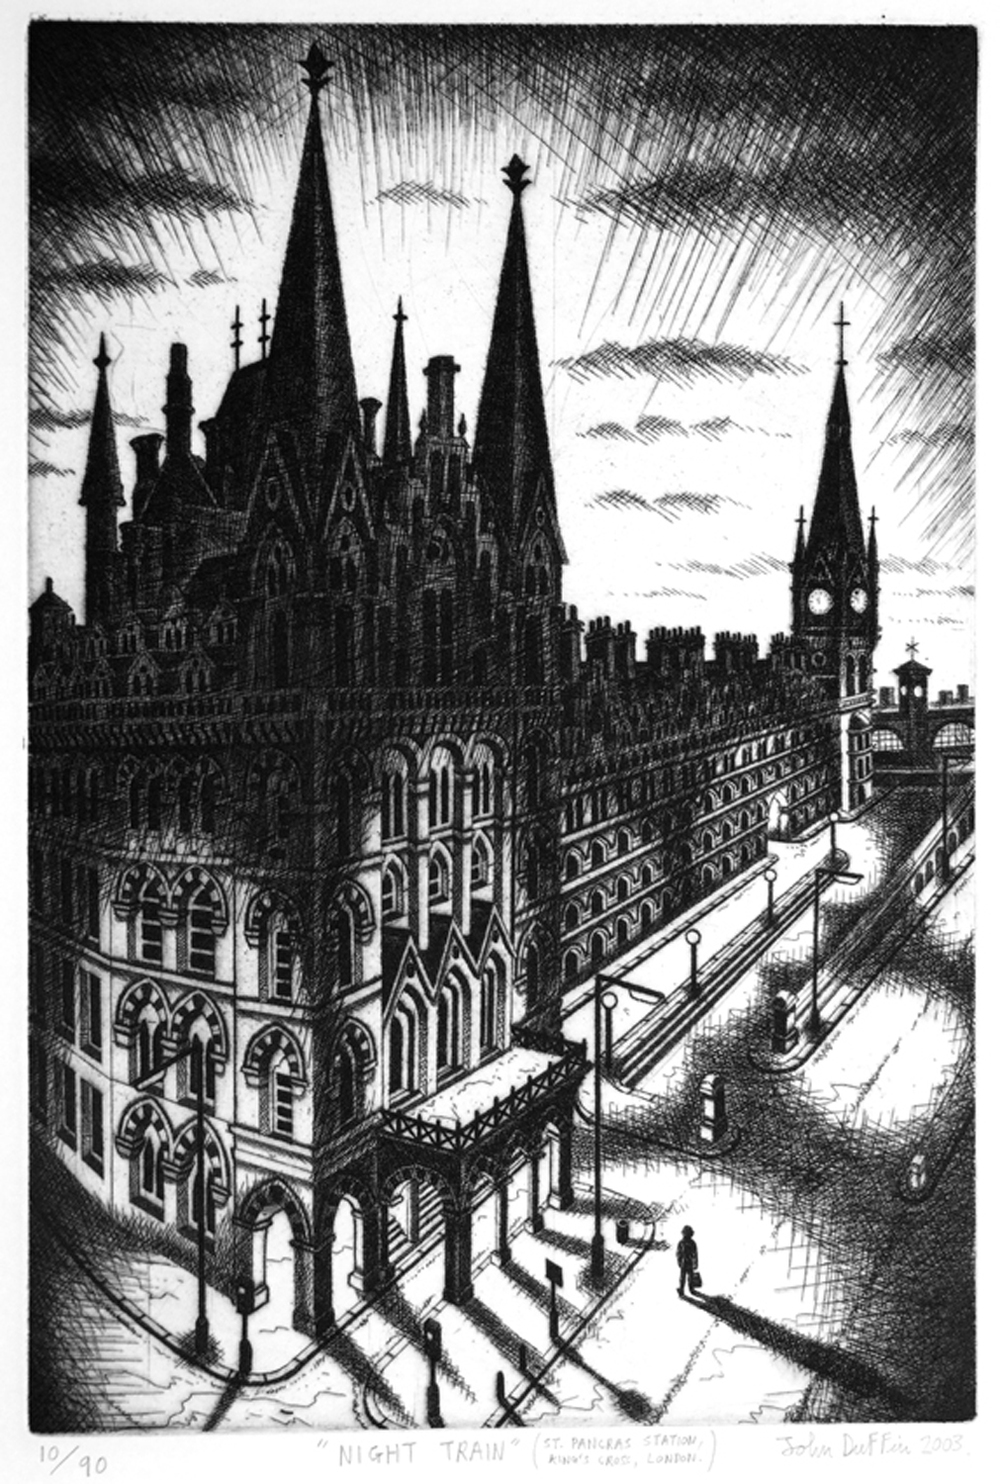 John Duffin   Night Train (St Pancras Station, Kings Cross, London)   etching